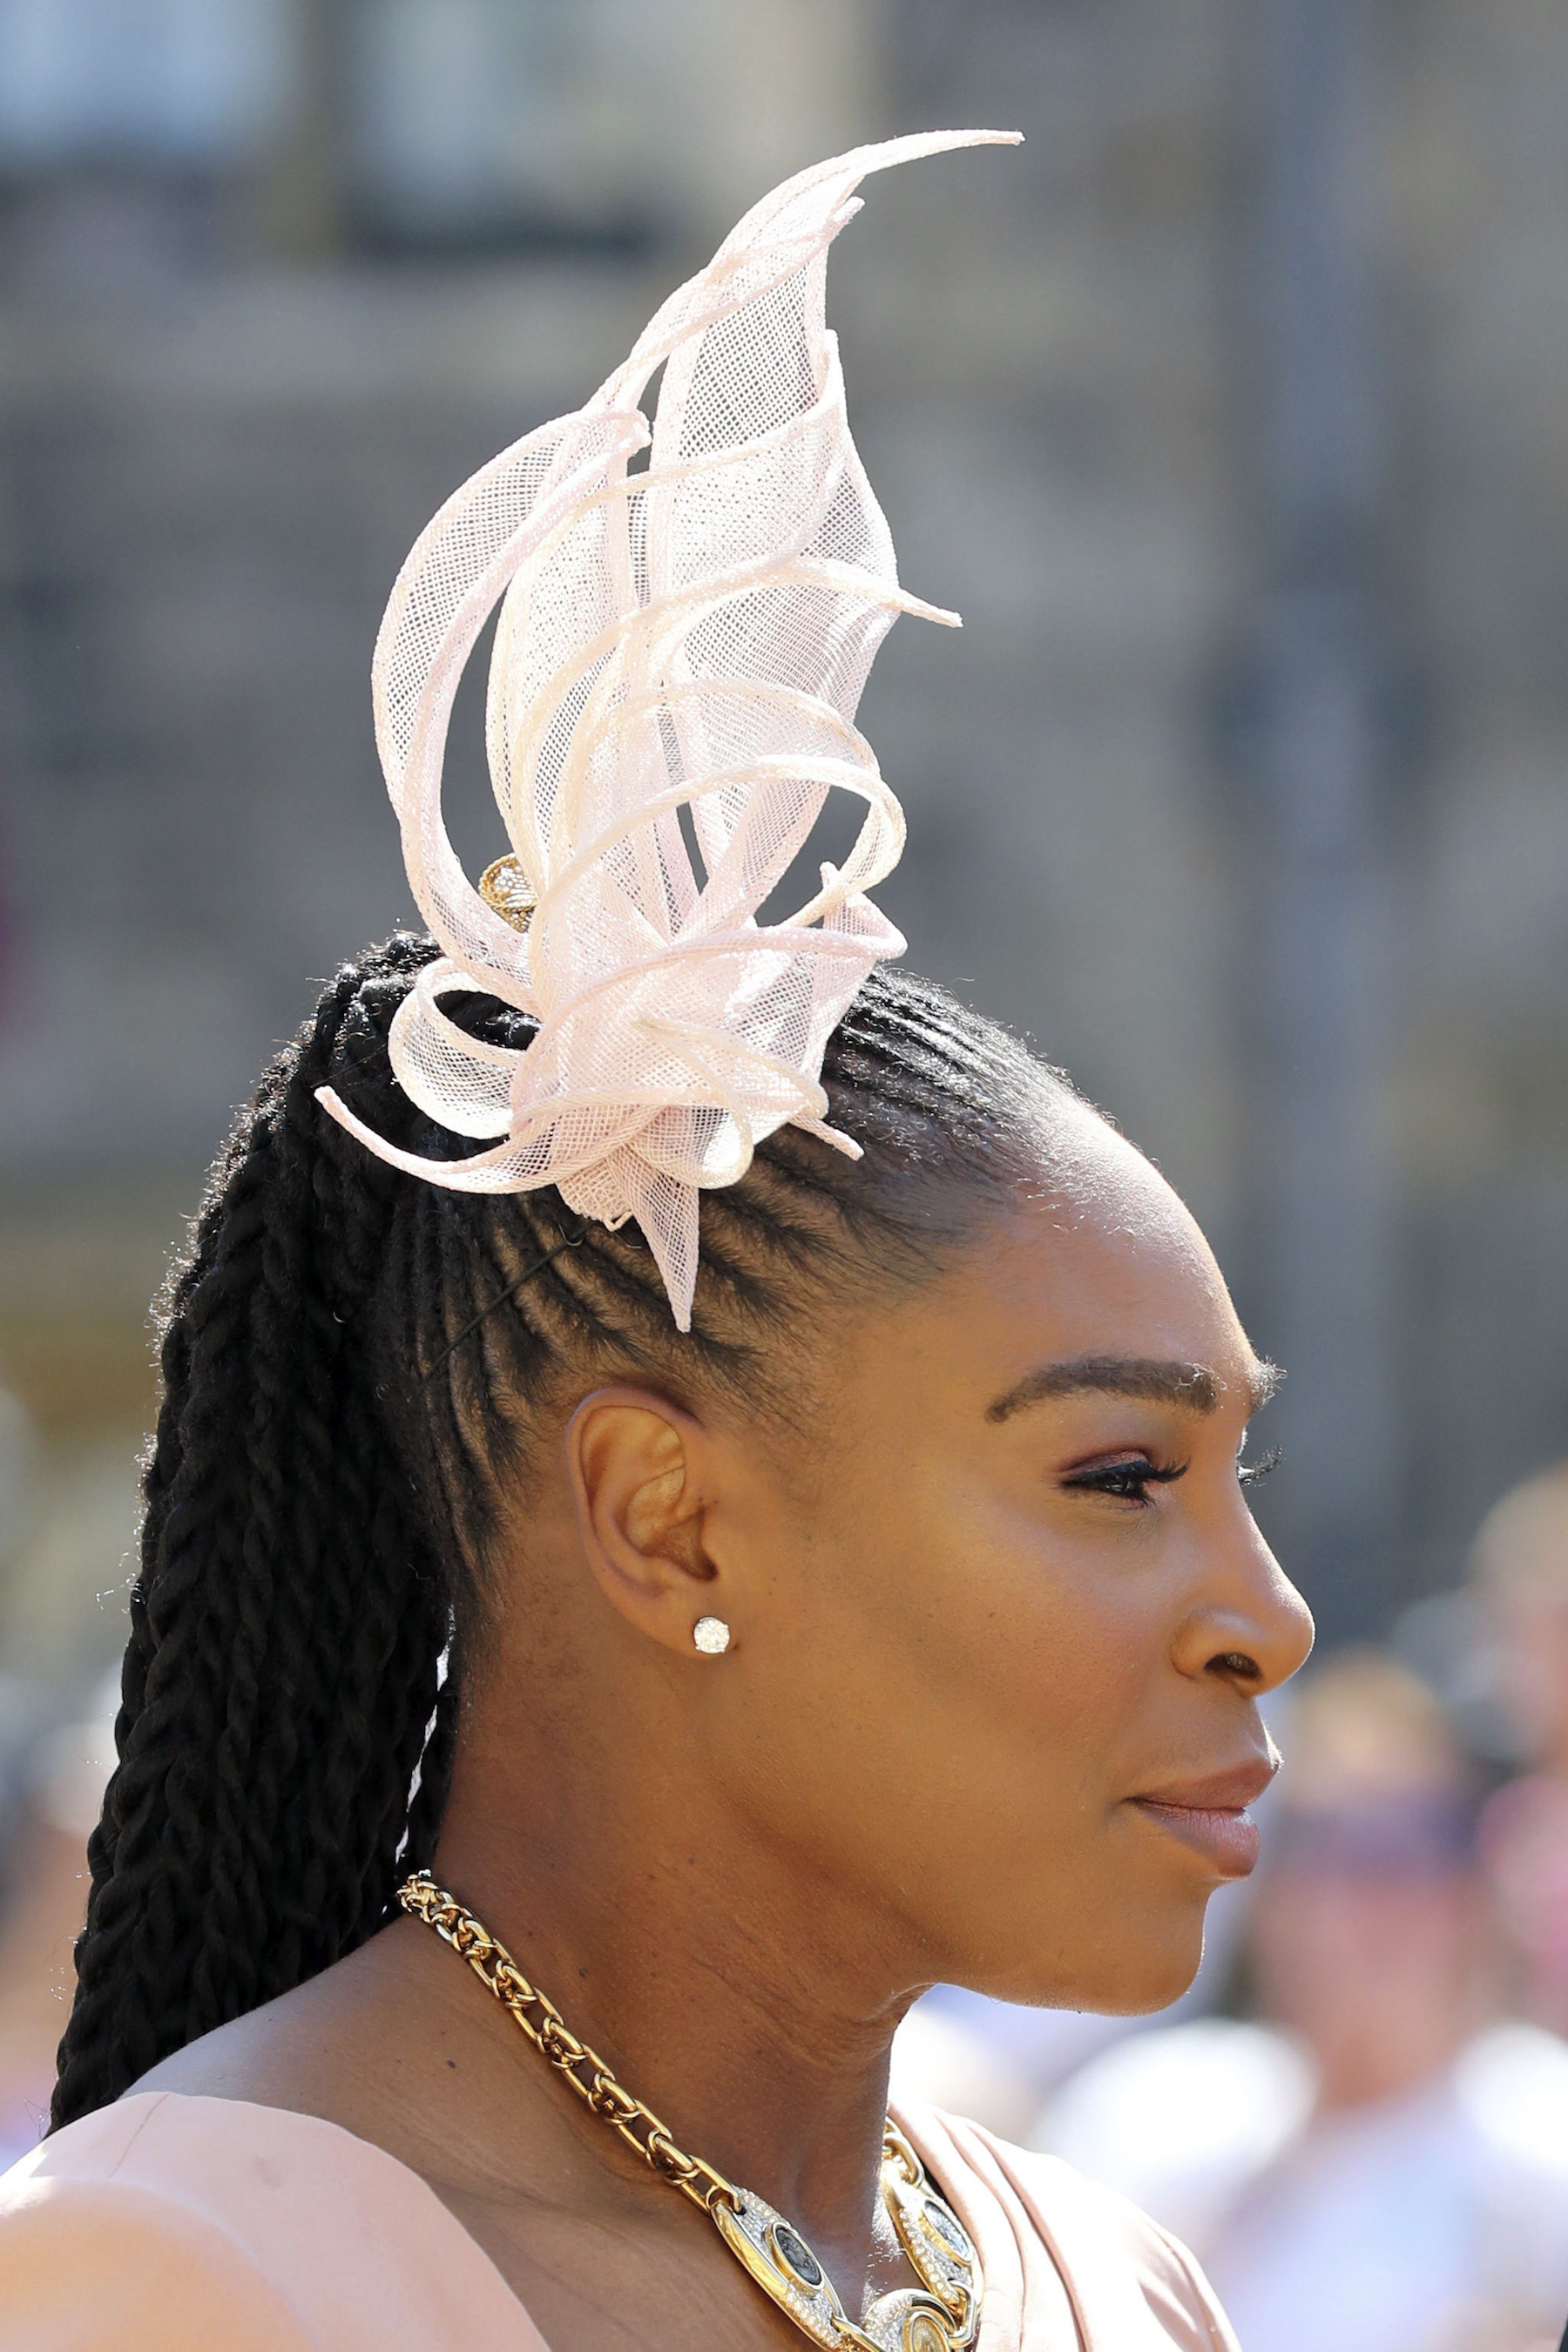 <div class='meta'><div class='origin-logo' data-origin='AP'></div><span class='caption-text' data-credit='Gareth Fuller/PA Wire'>Serena Williams arrives at St George's Chapel at Windsor Castle for the wedding of Meghan Markle and Prince Harry.</span></div>